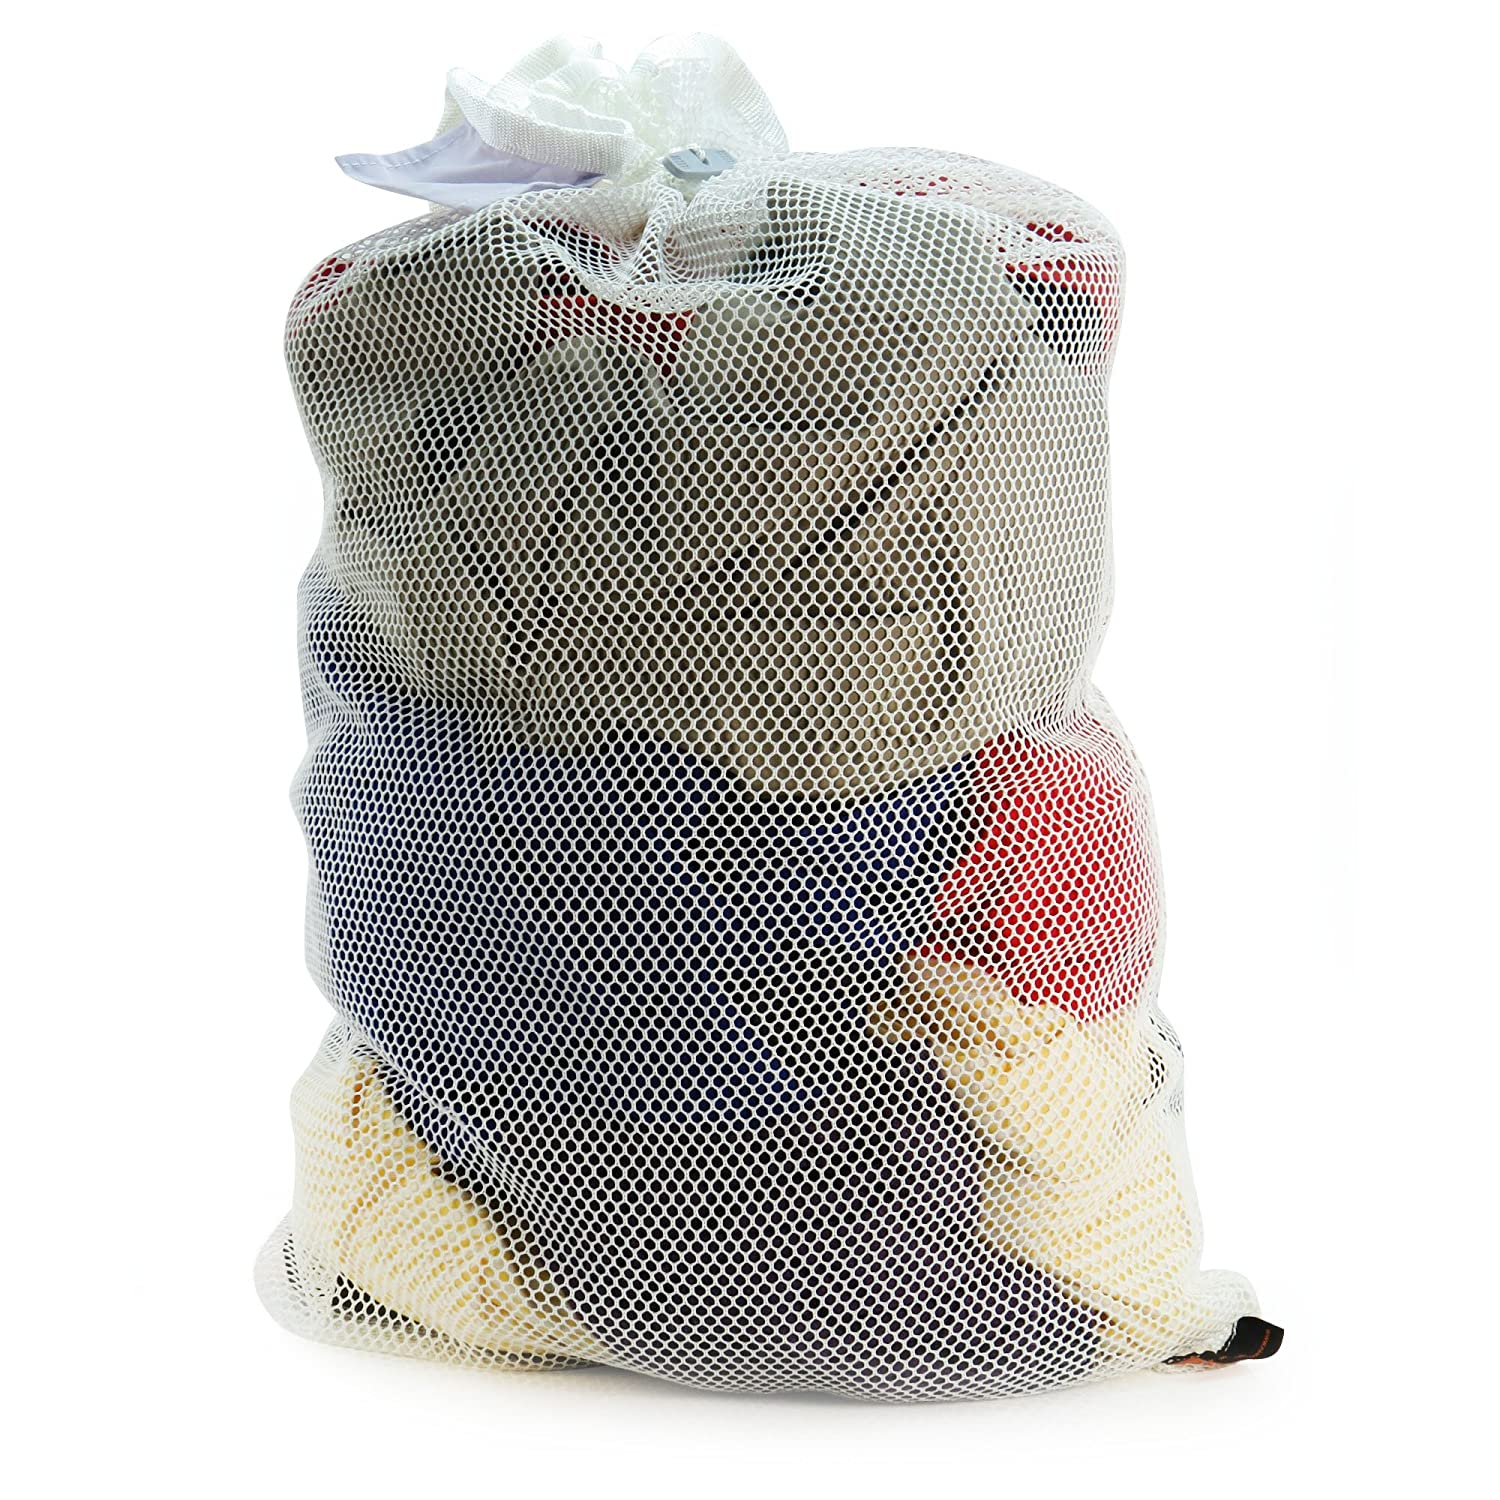 HANGERWORLD White Mesh Polyester Netting Laundry Bag 34inch x 24inch Washing Machine Tumbler Dryer